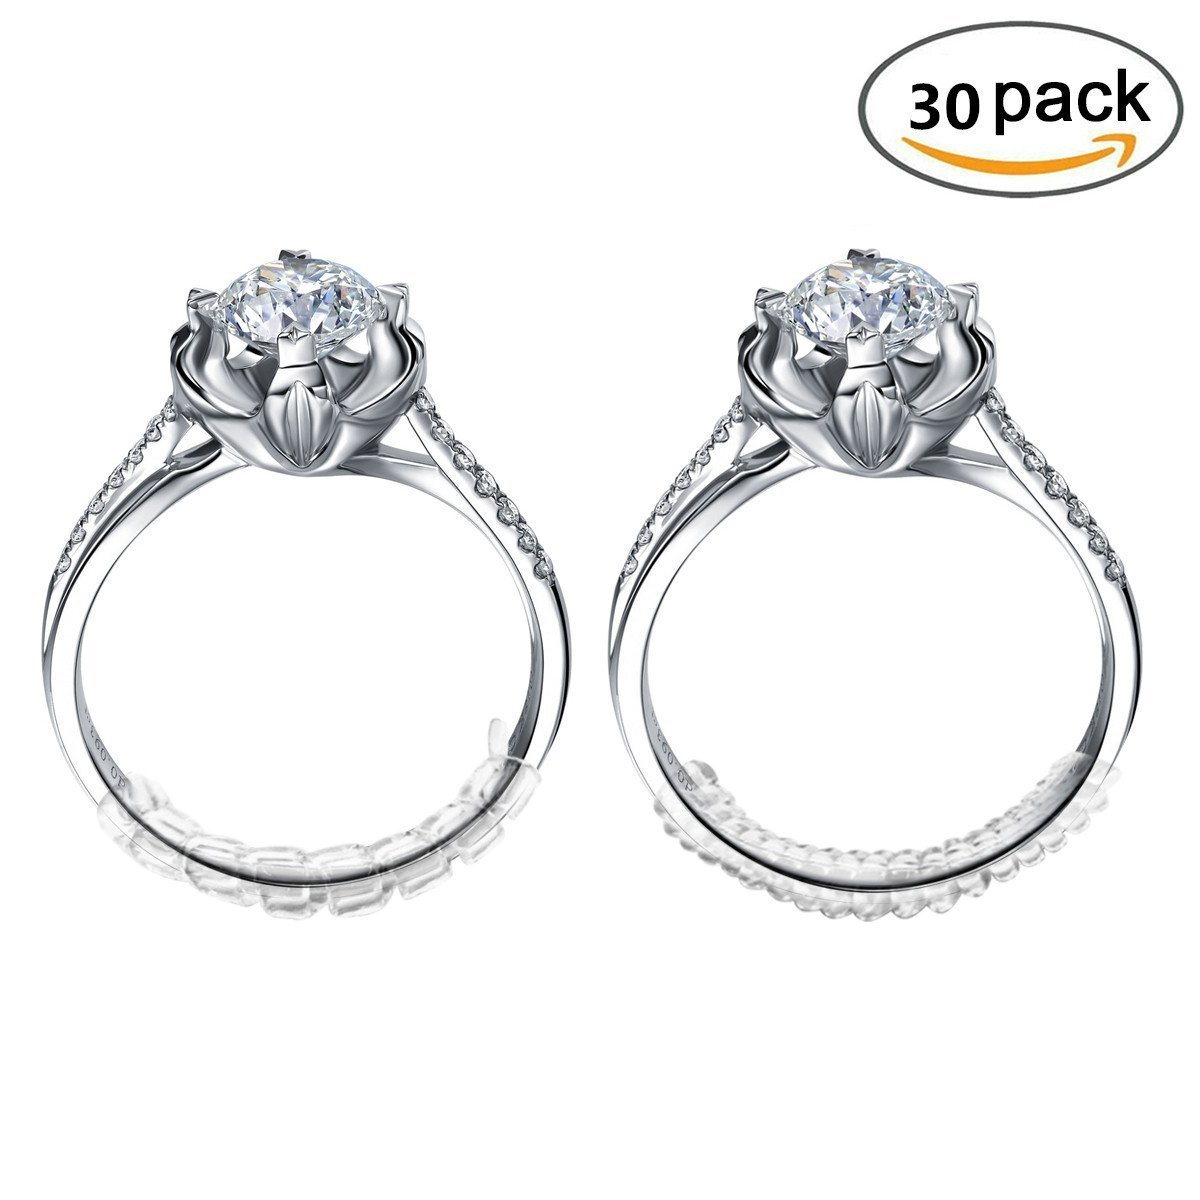 Get Quotations · Ring Size Adjuster For Loose Rings With Jewelry Polishing Cloth Set Of 30 Transparent Gaurd: Plastic Wedding Ring Spacer At Websimilar.org